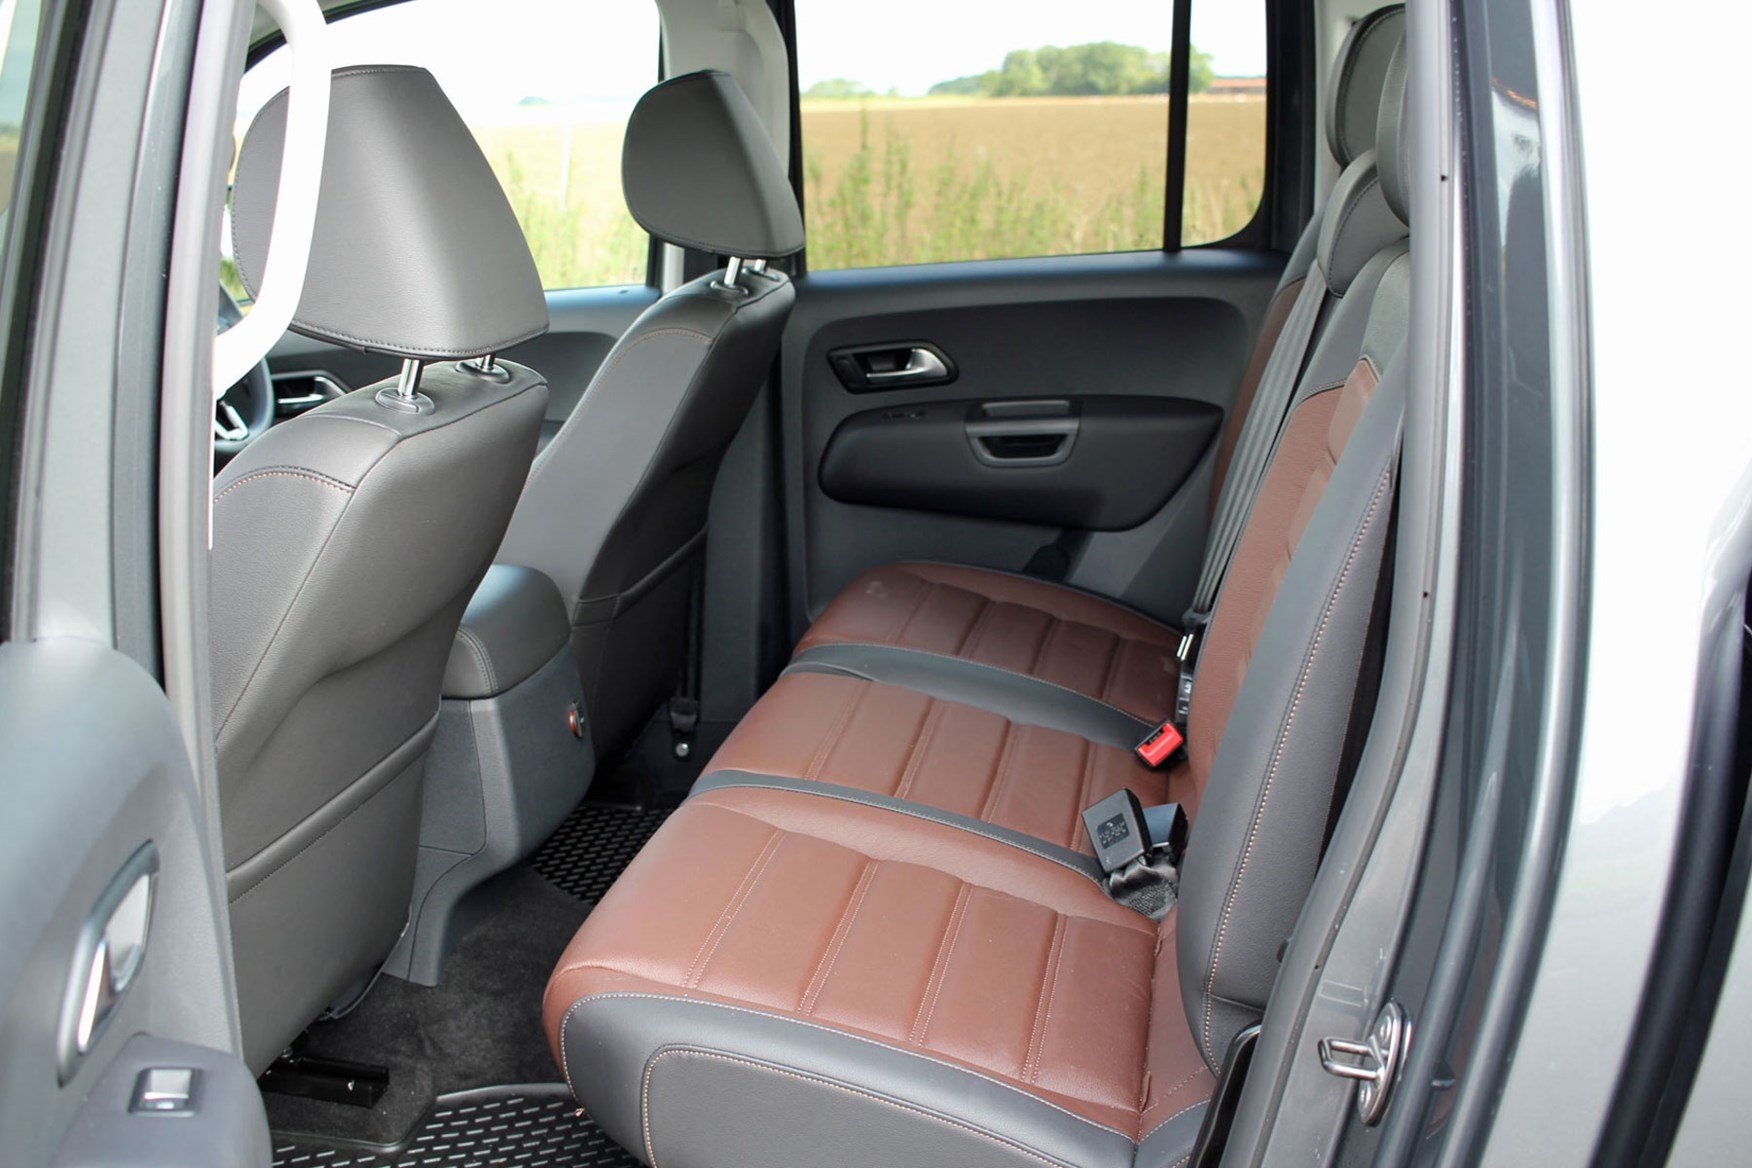 VW Amarok V6 Highline 224hp review - rear seats